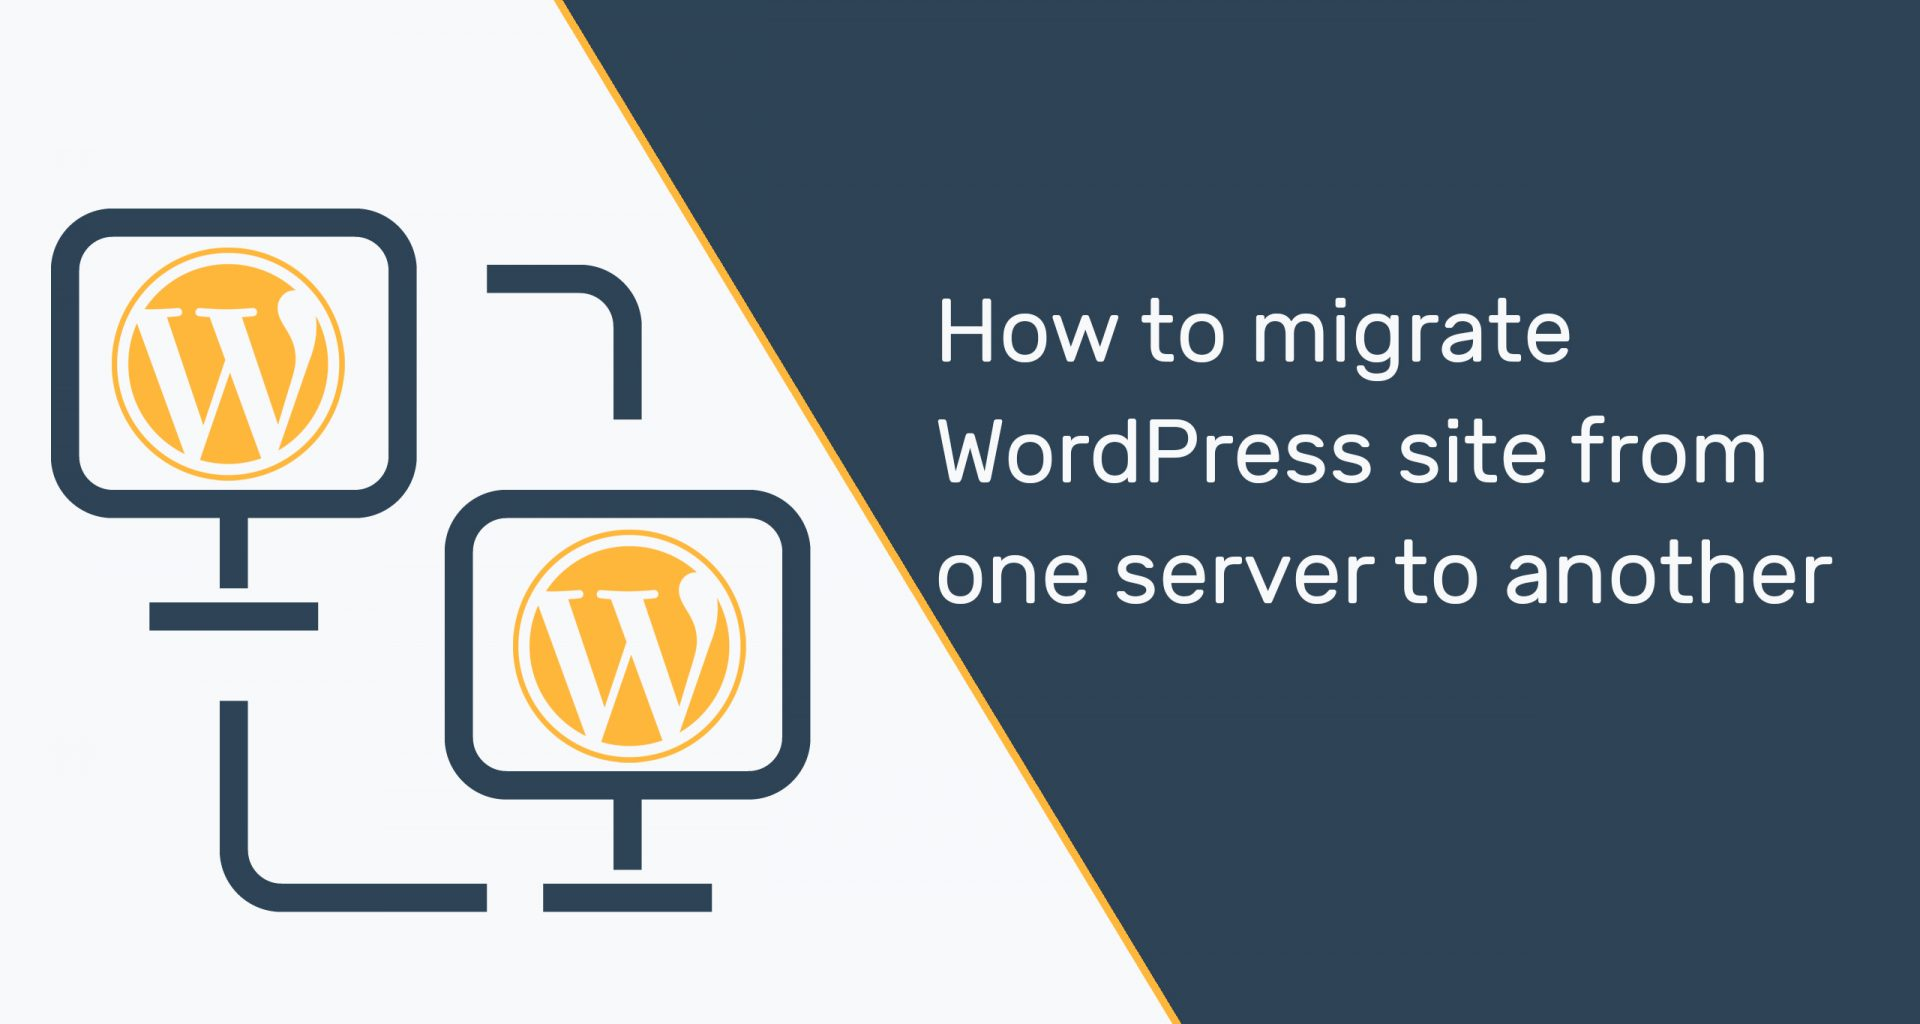 How to migrate WordPress site from one server to anotherHow to migrate WordPress site from one server to another - Beginners guide